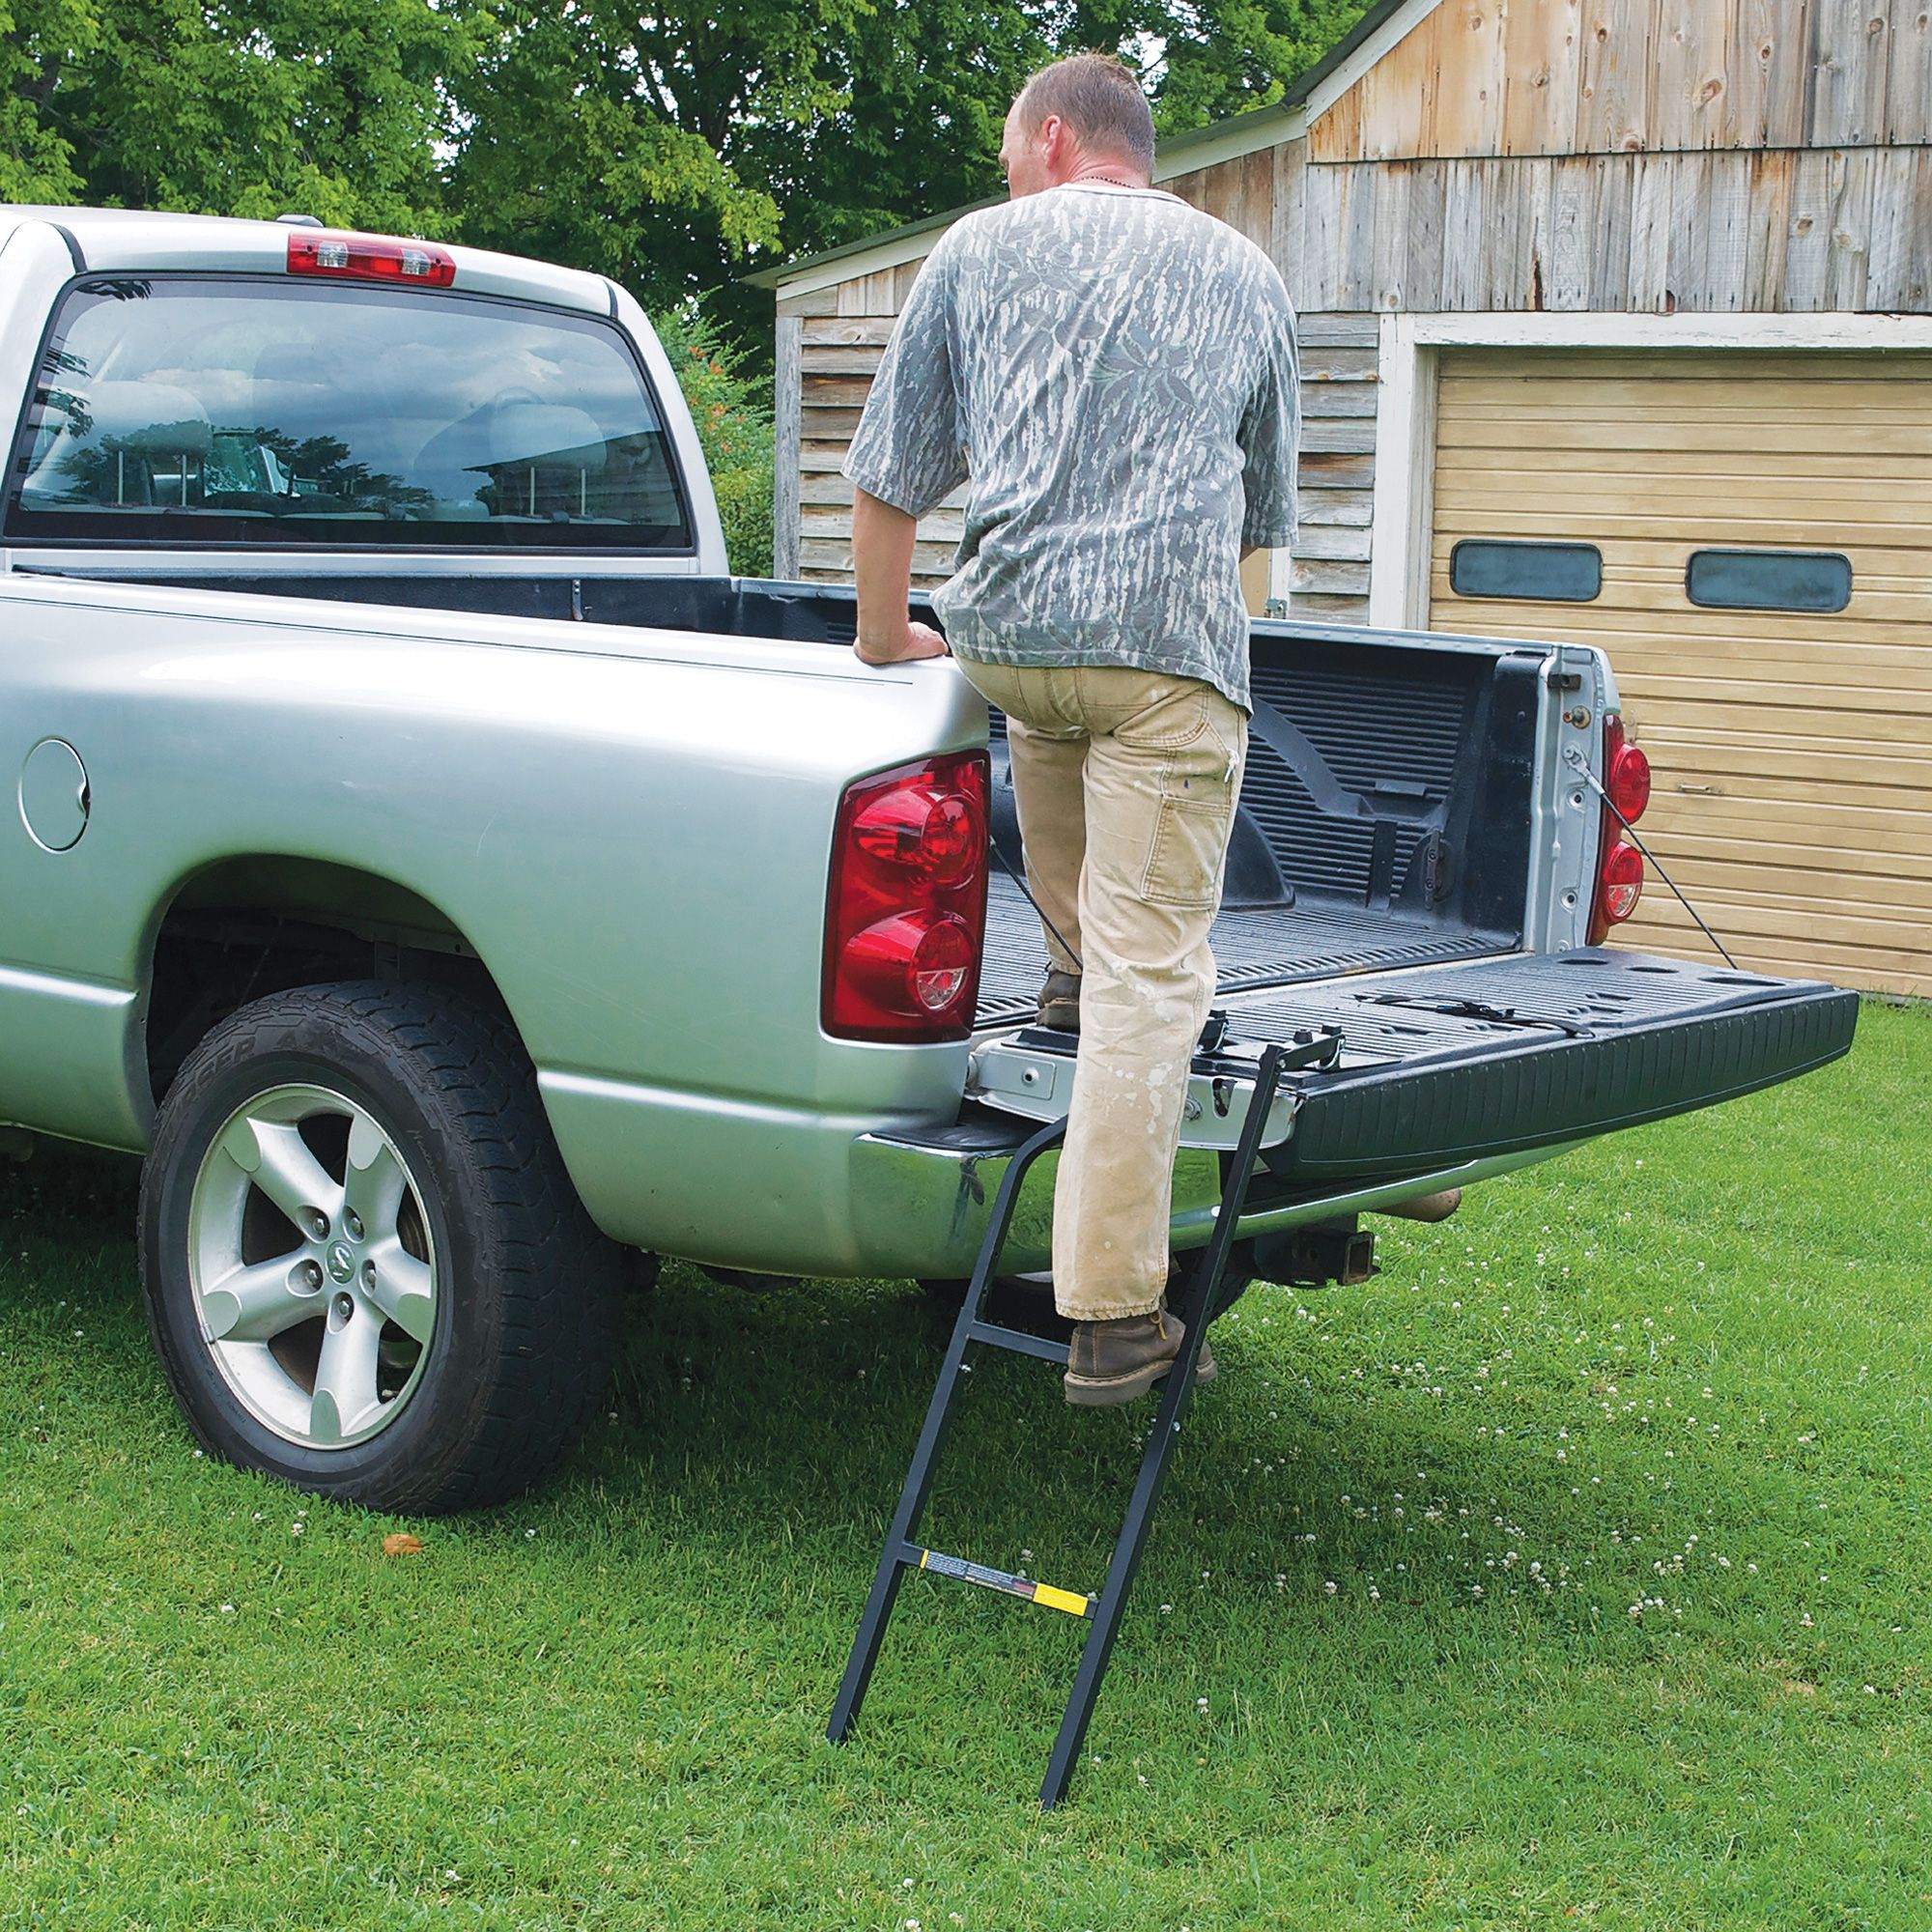 The Tailgate Ladder swings easily into position for quick